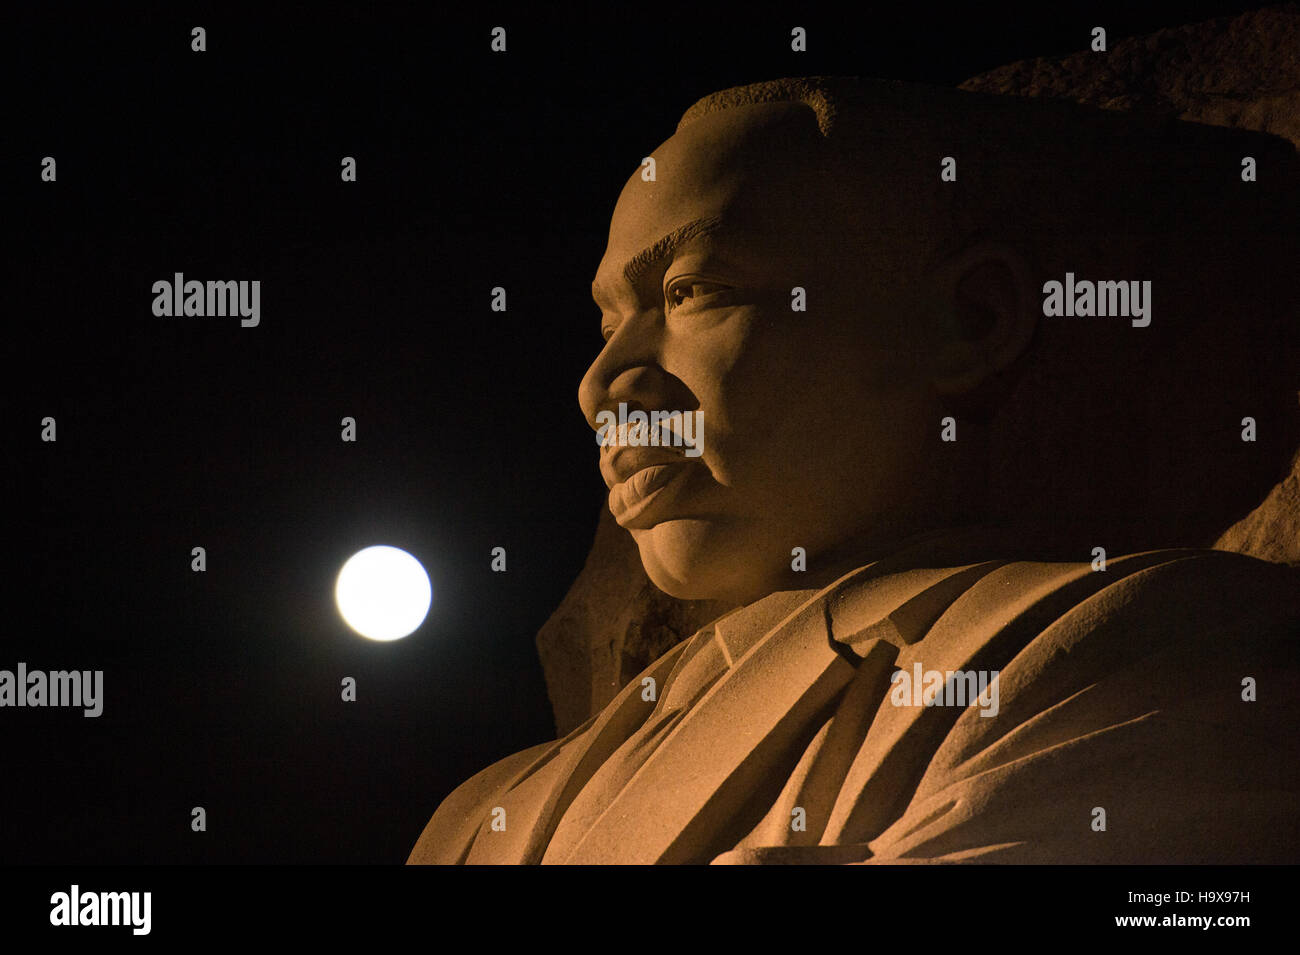 The supermoon sets over the Martin Luther King Jr. Memorial November 14, 2016 in Washington, DC. The moon appears - Stock Image